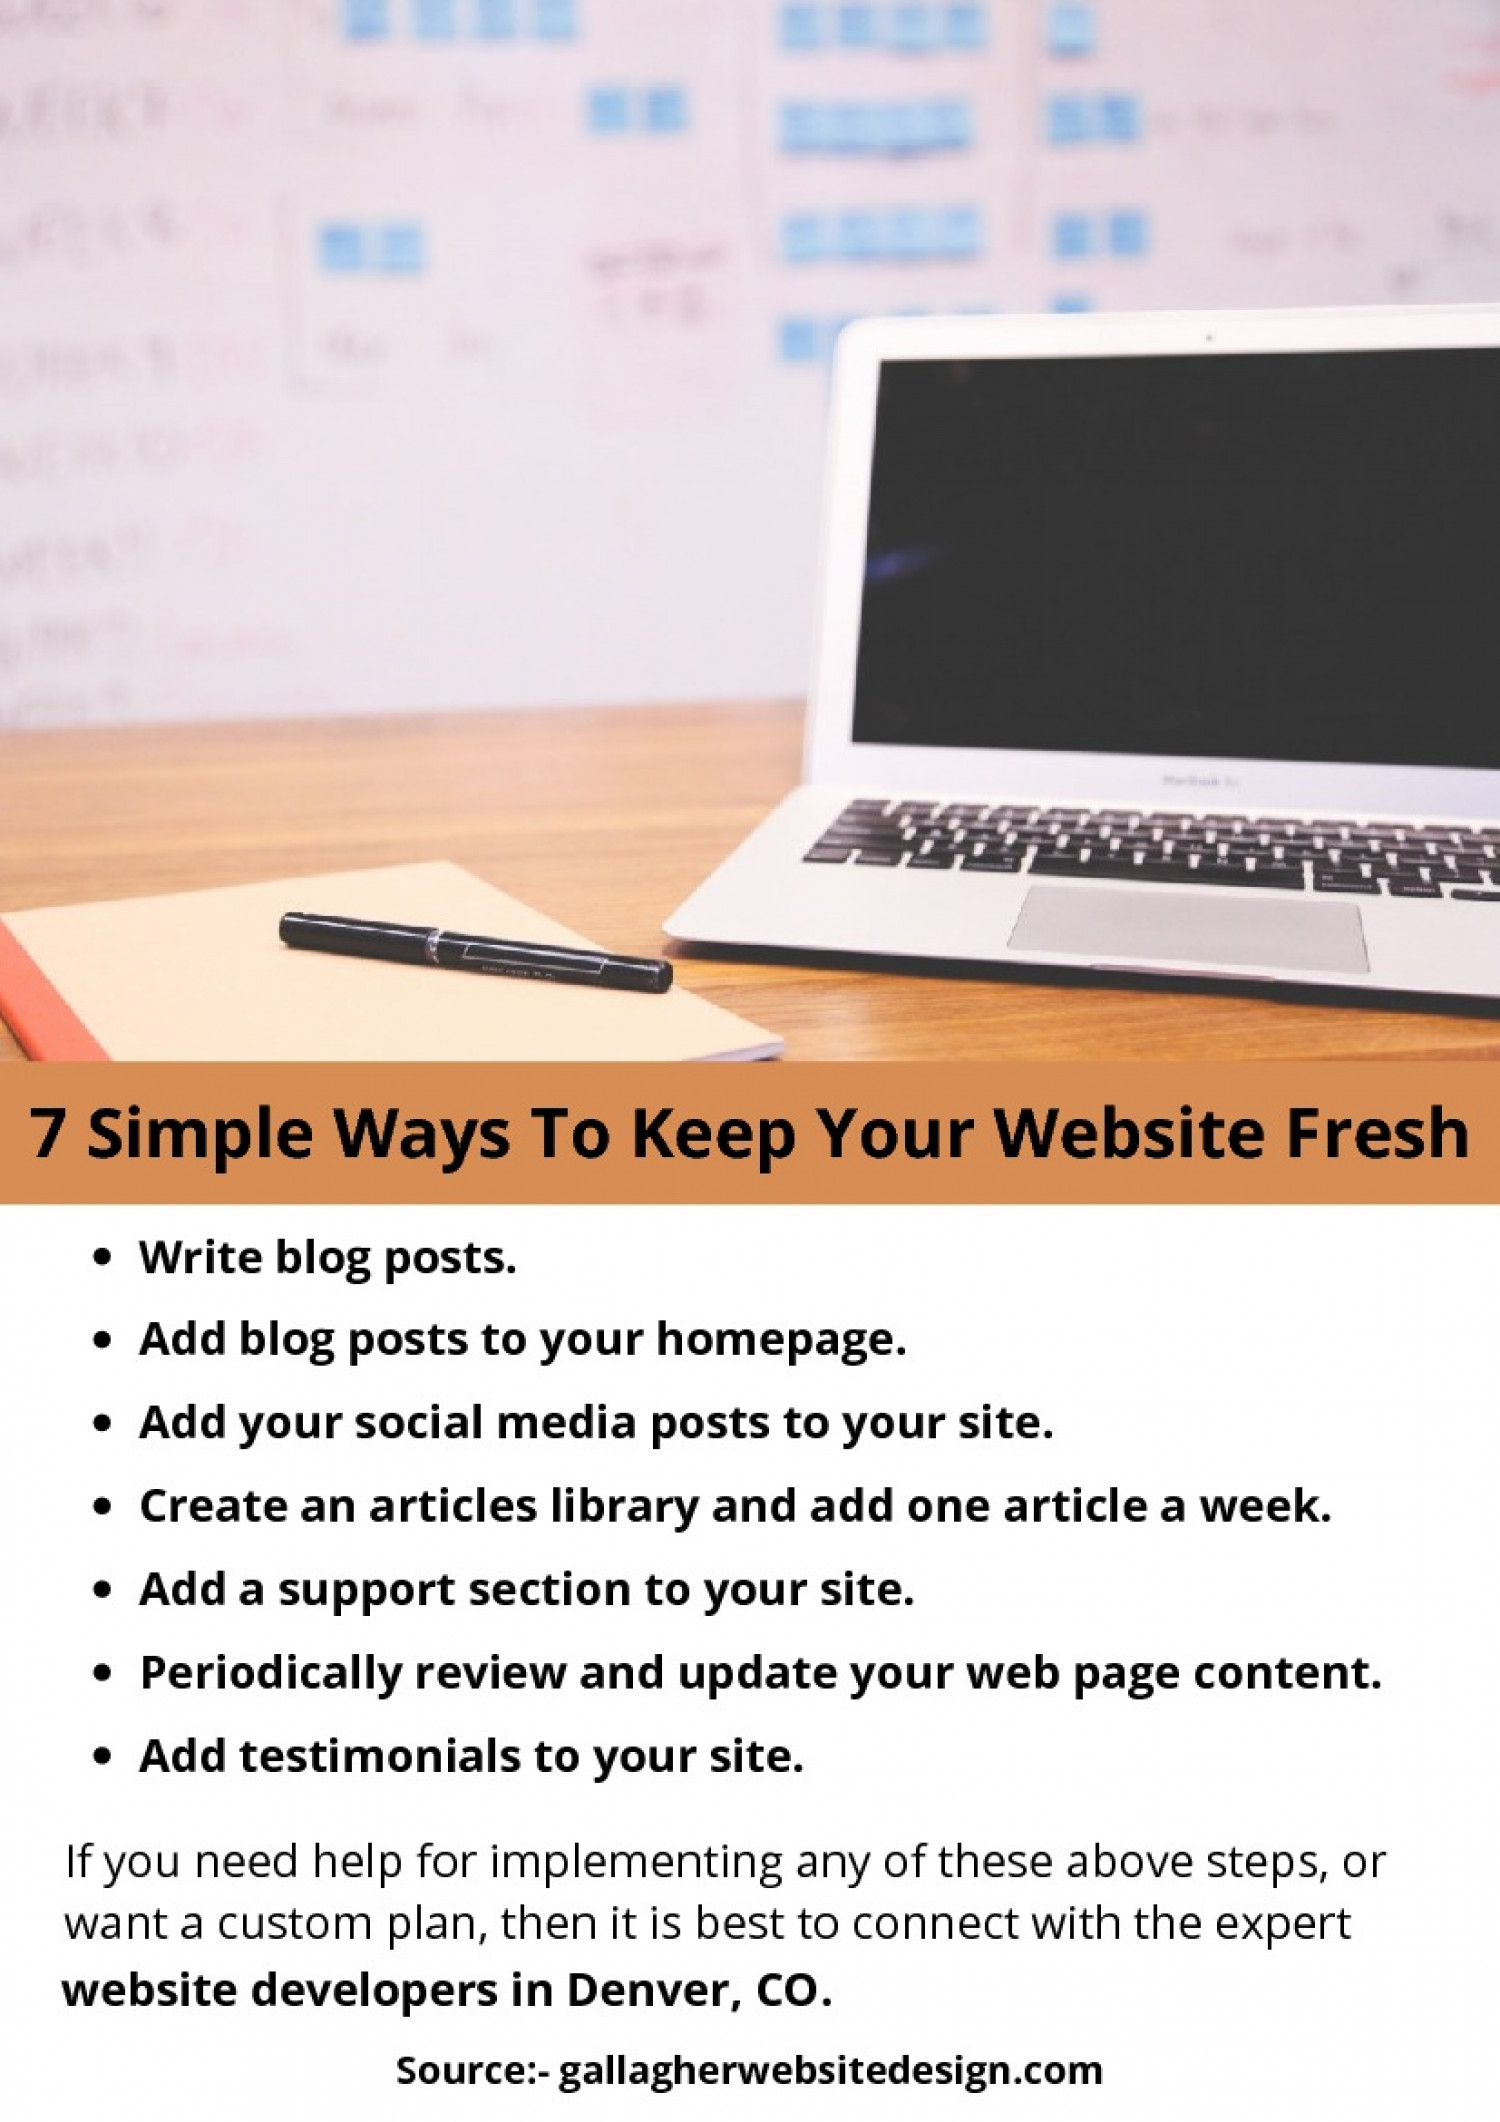 7 Simple Ways To Keep Your Website Fresh Infographic